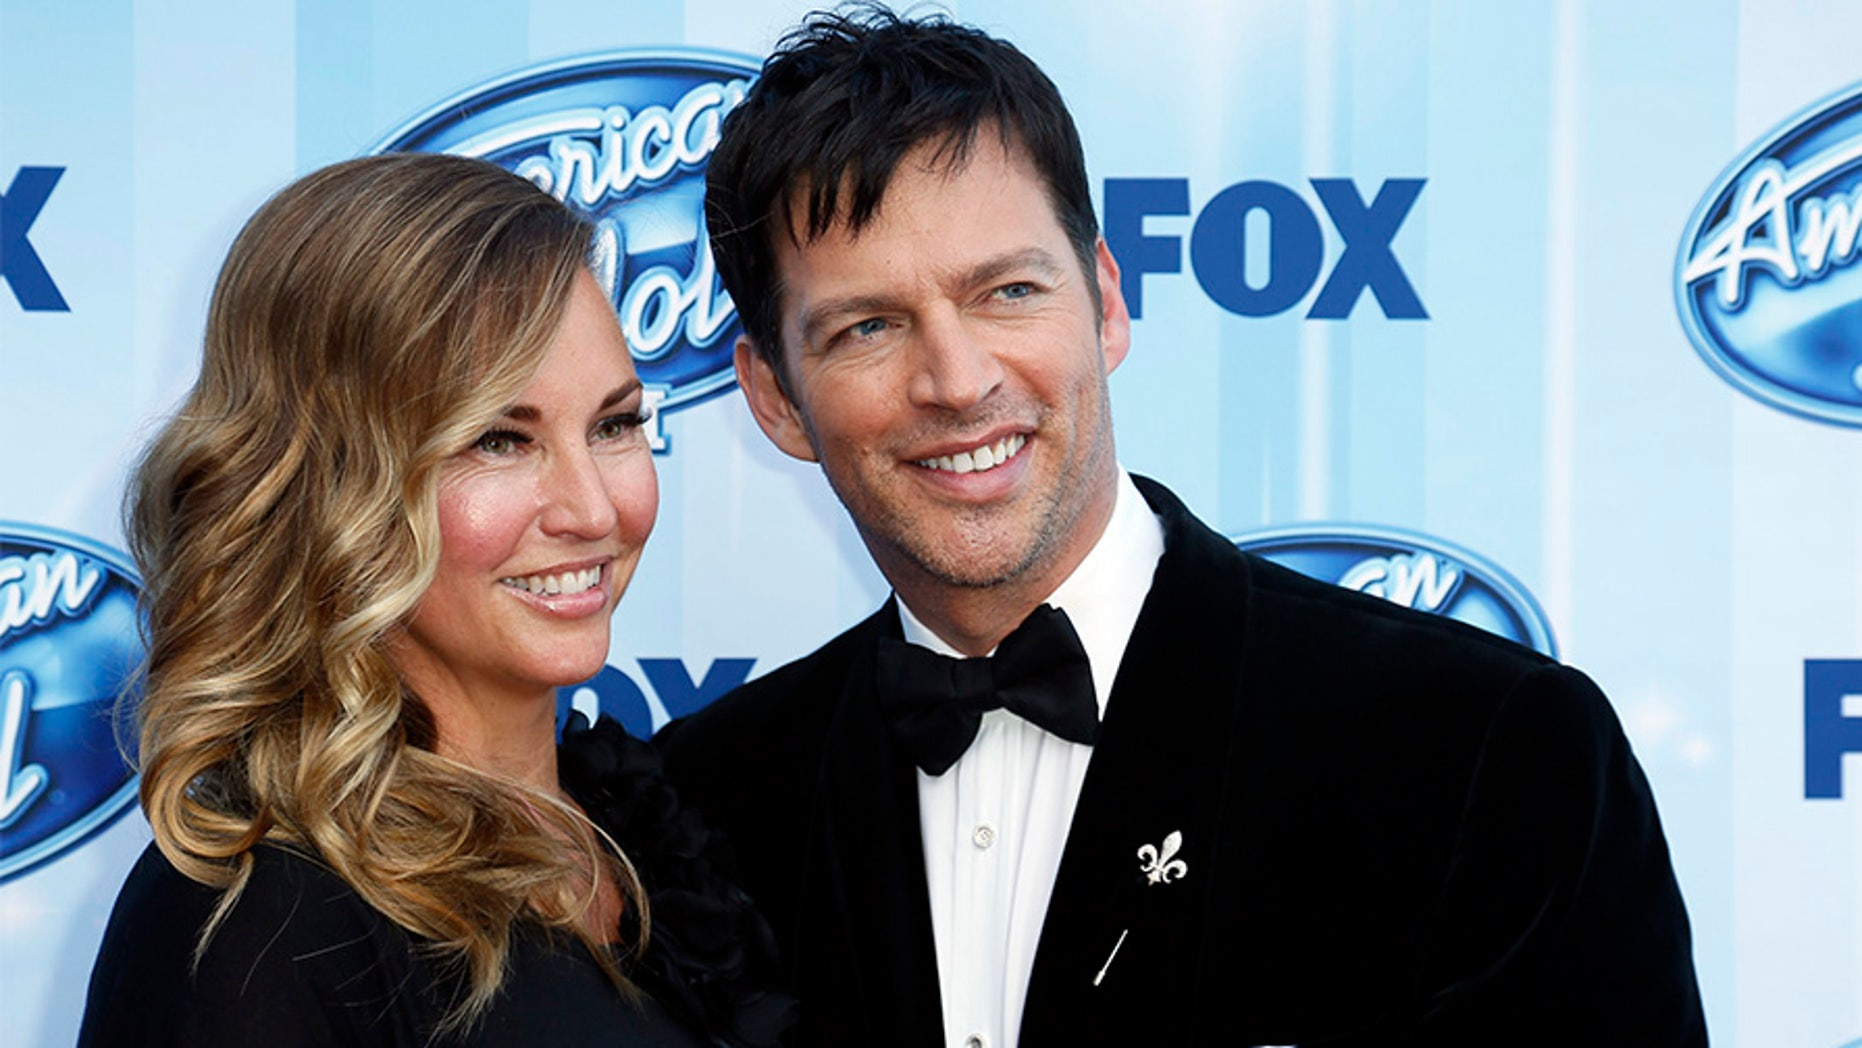 Singer Harry Connick, Jr. and his wife Jill Goodacre in a 2014 file photo.